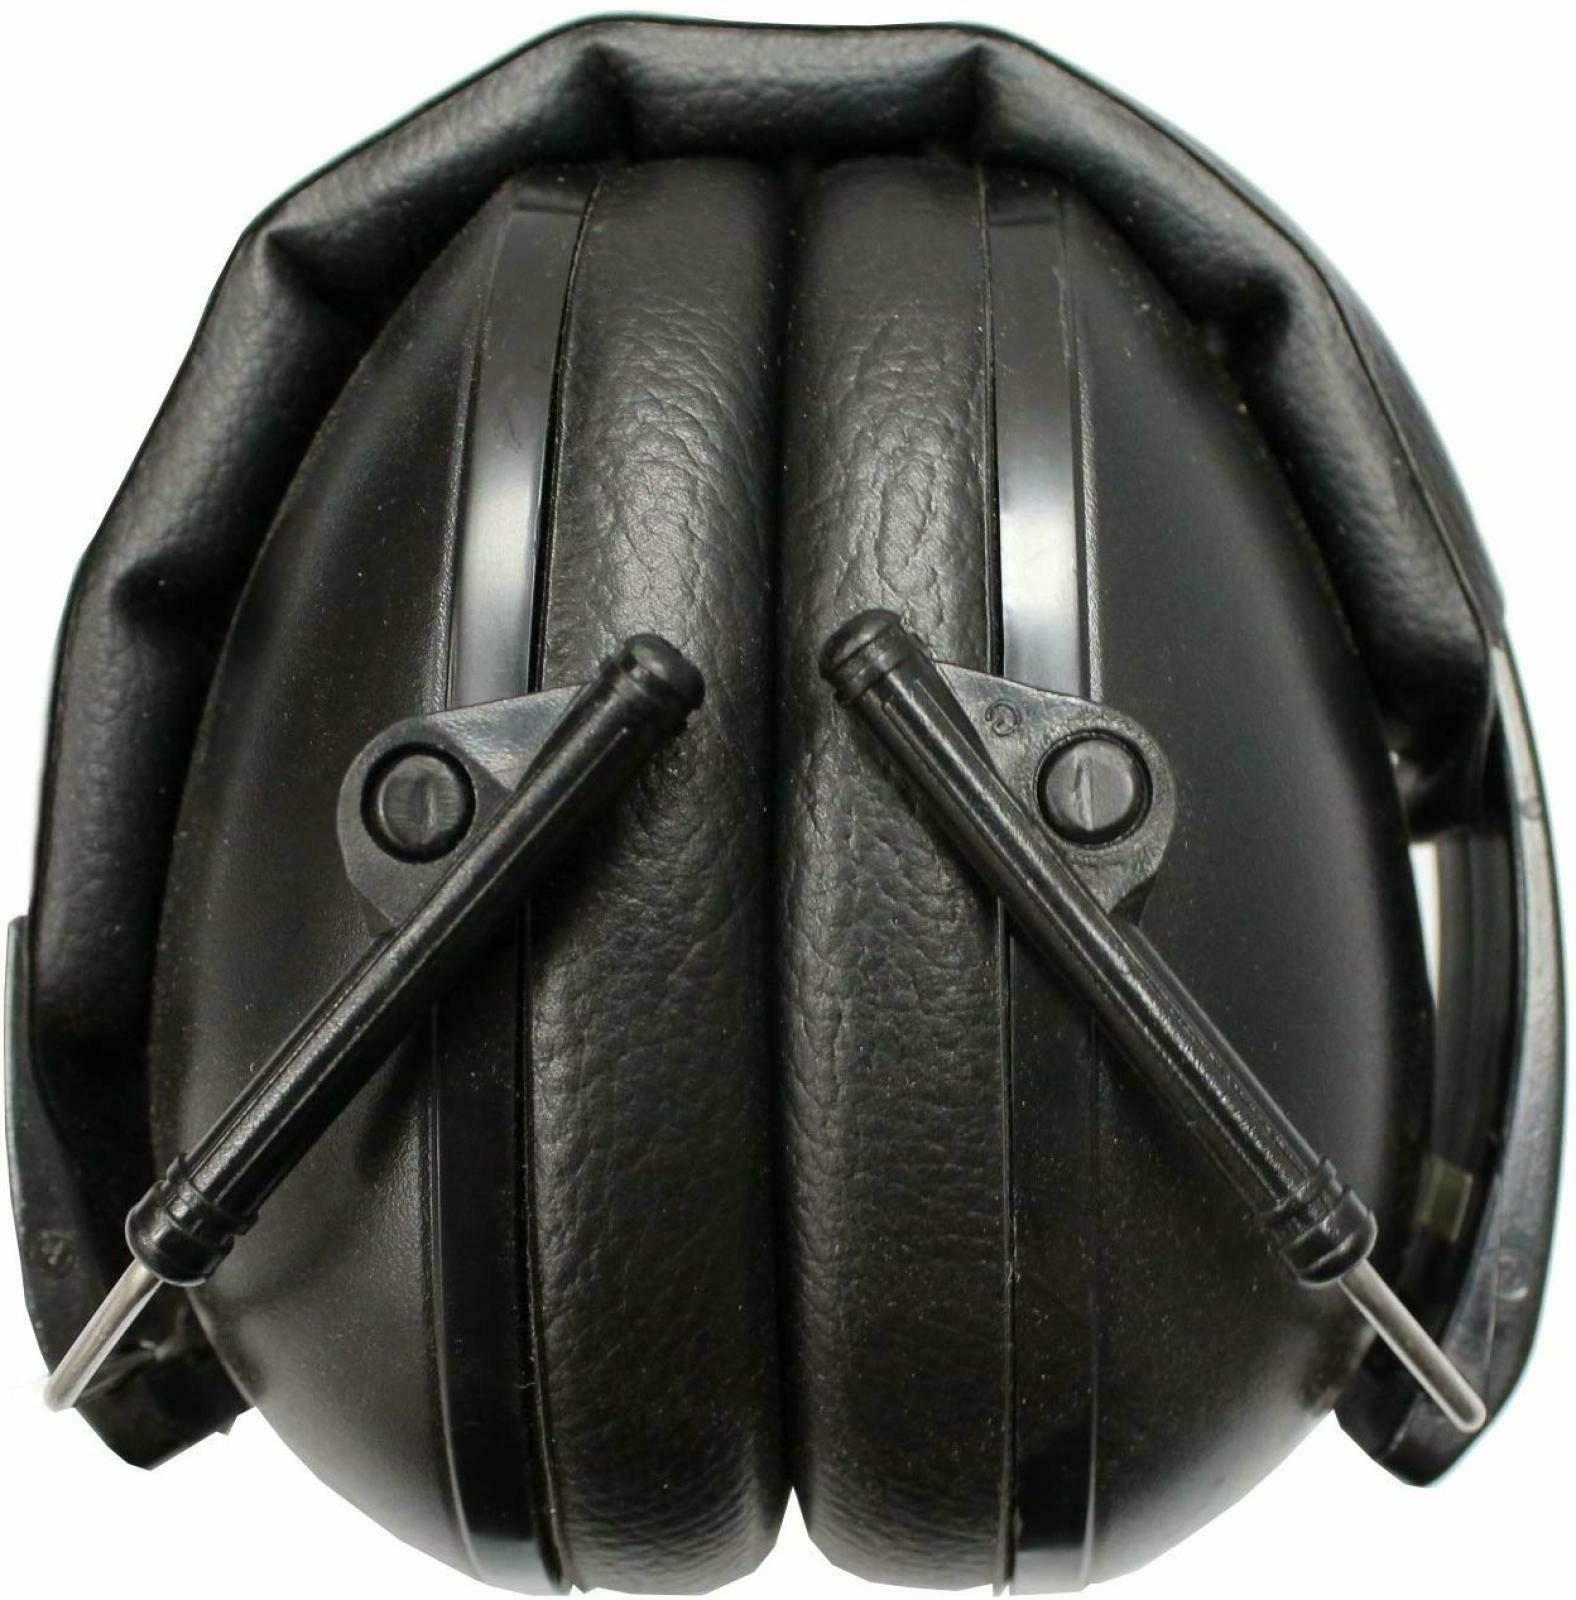 Noise Ear Hearing Protection Safety